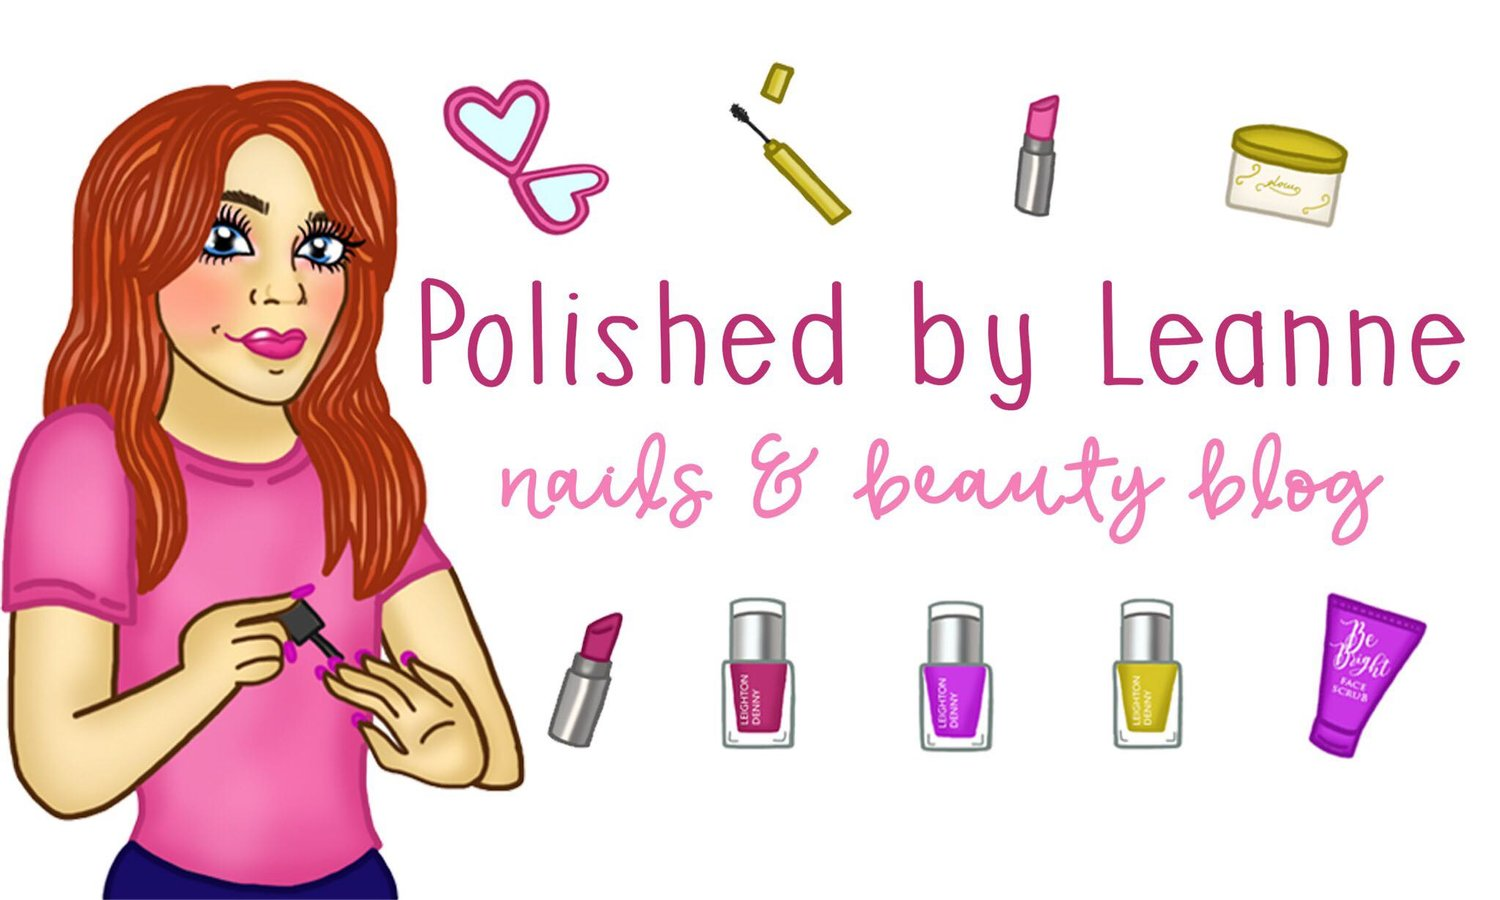 Polished by Leanne